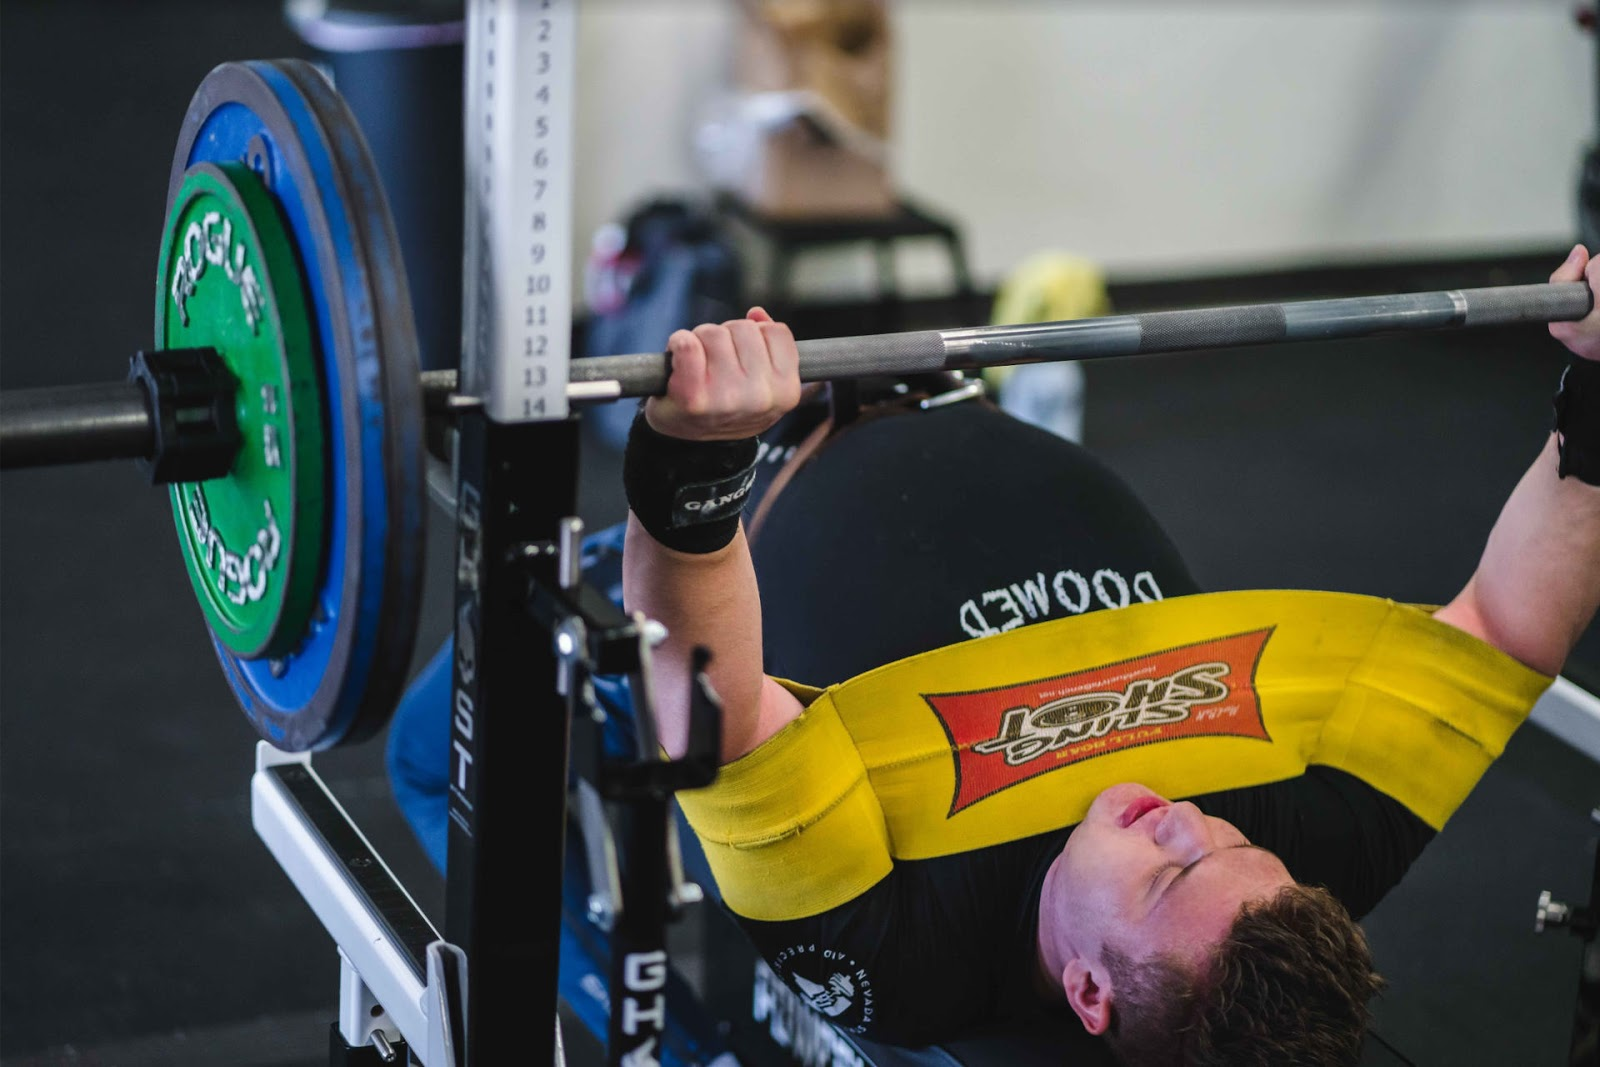 man bench pressing with yellow tension band